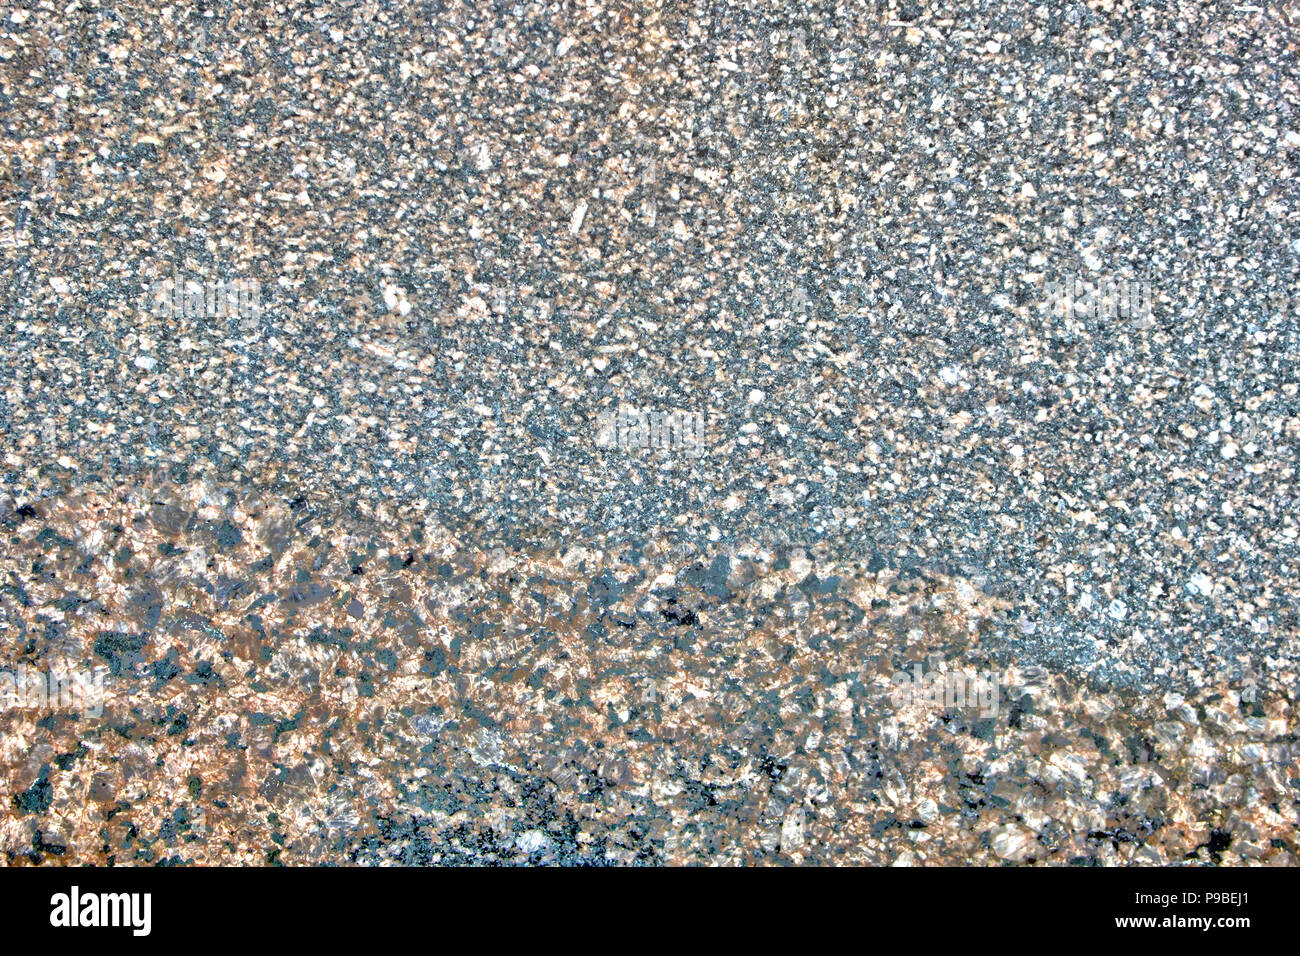 Multicolored natural stone texture, smooth granite surface, may be used as background - Stock Image